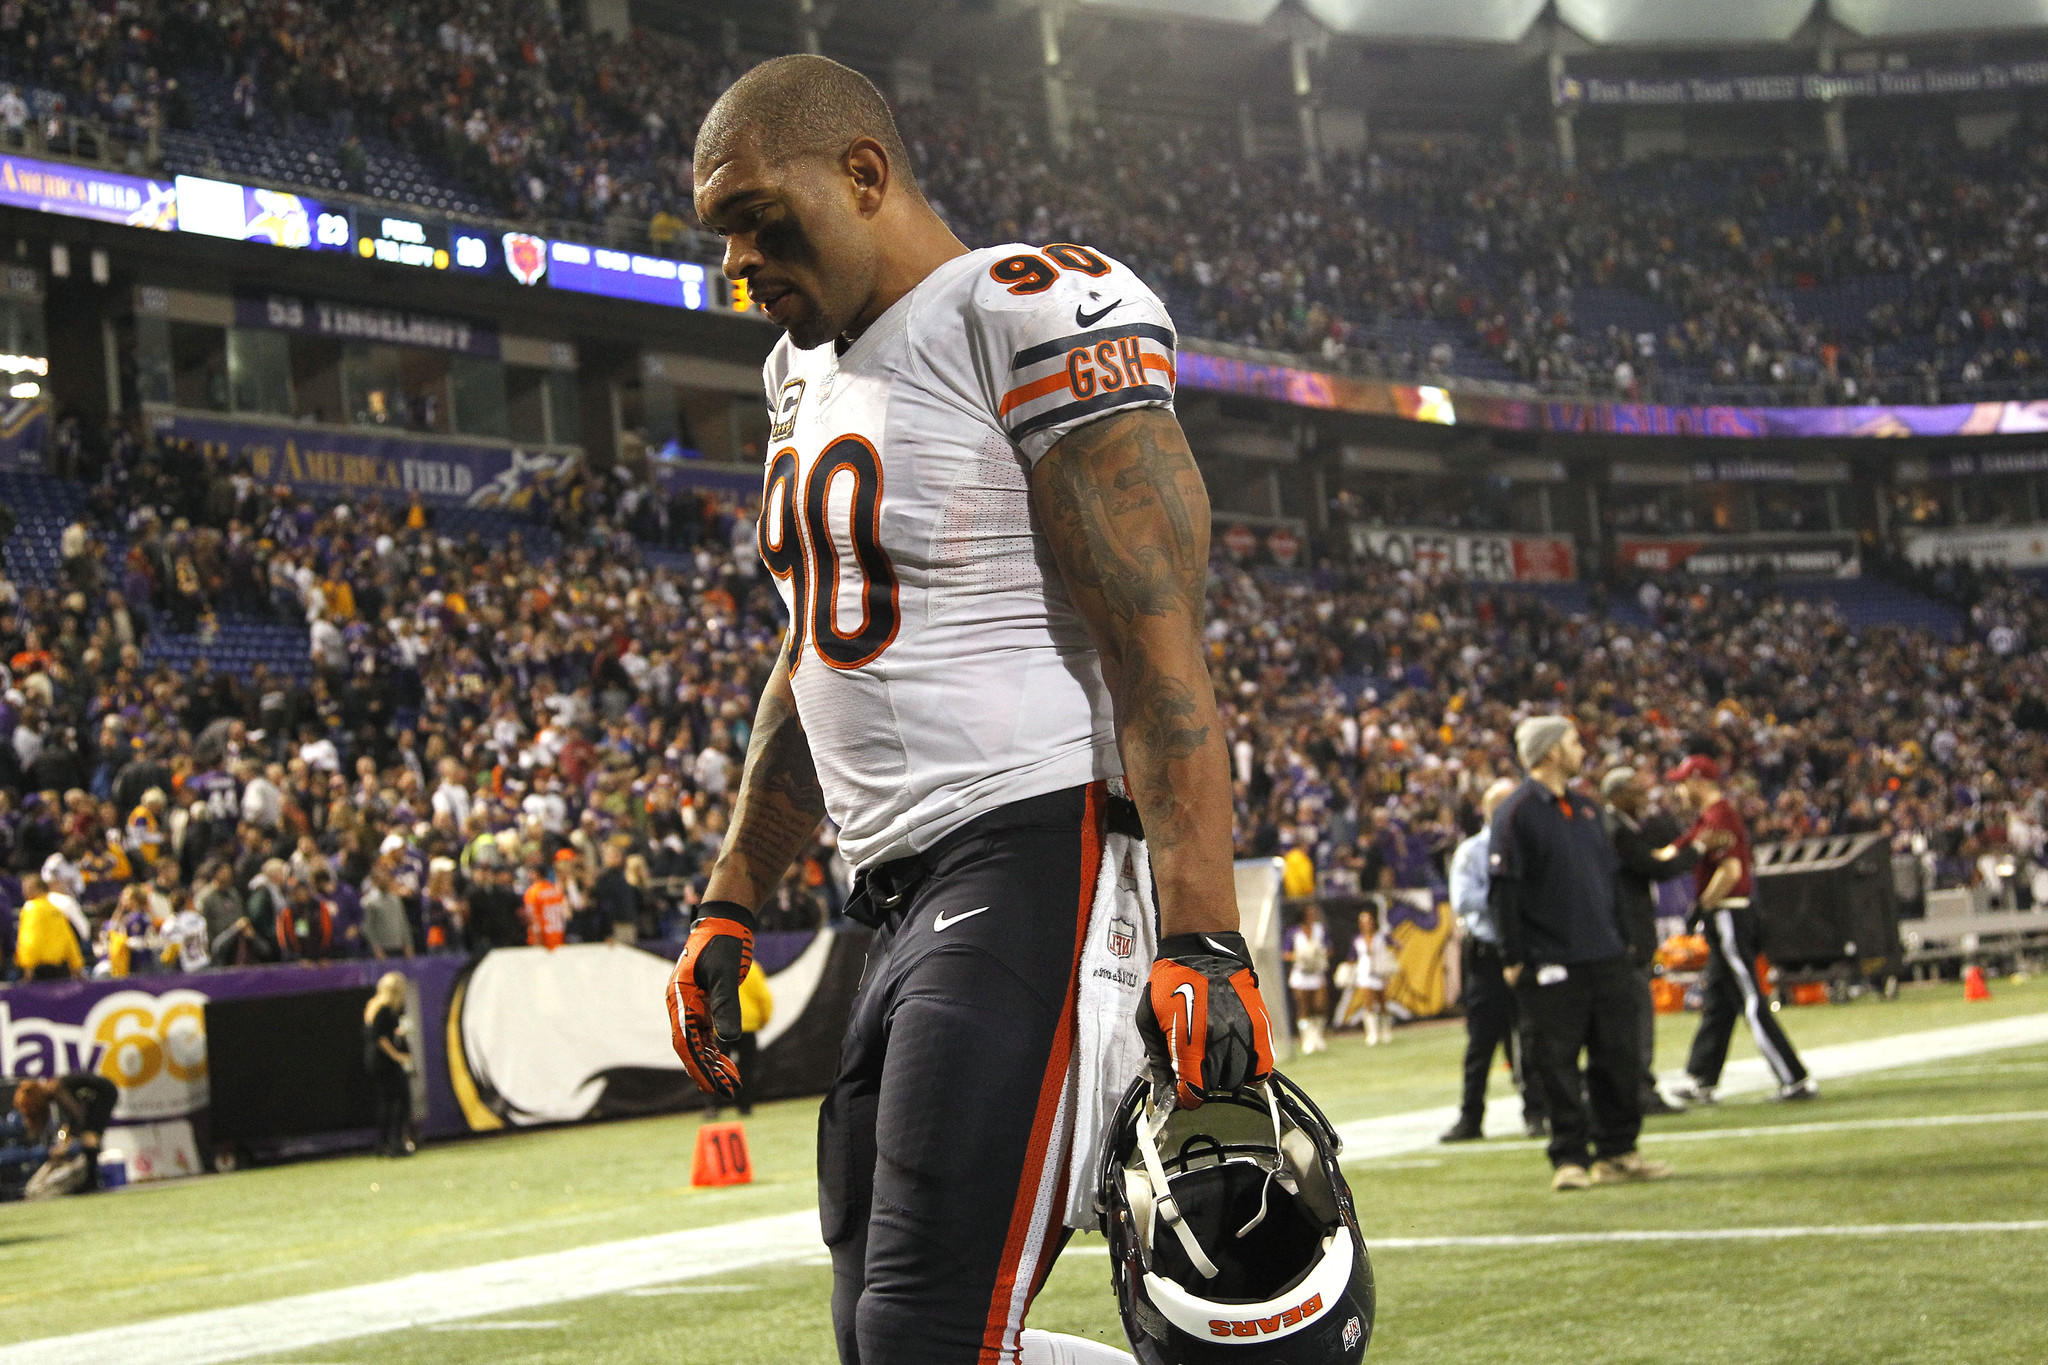 Chicago Bears defensive end Julius Peppers after a loss to the Vikings last year.